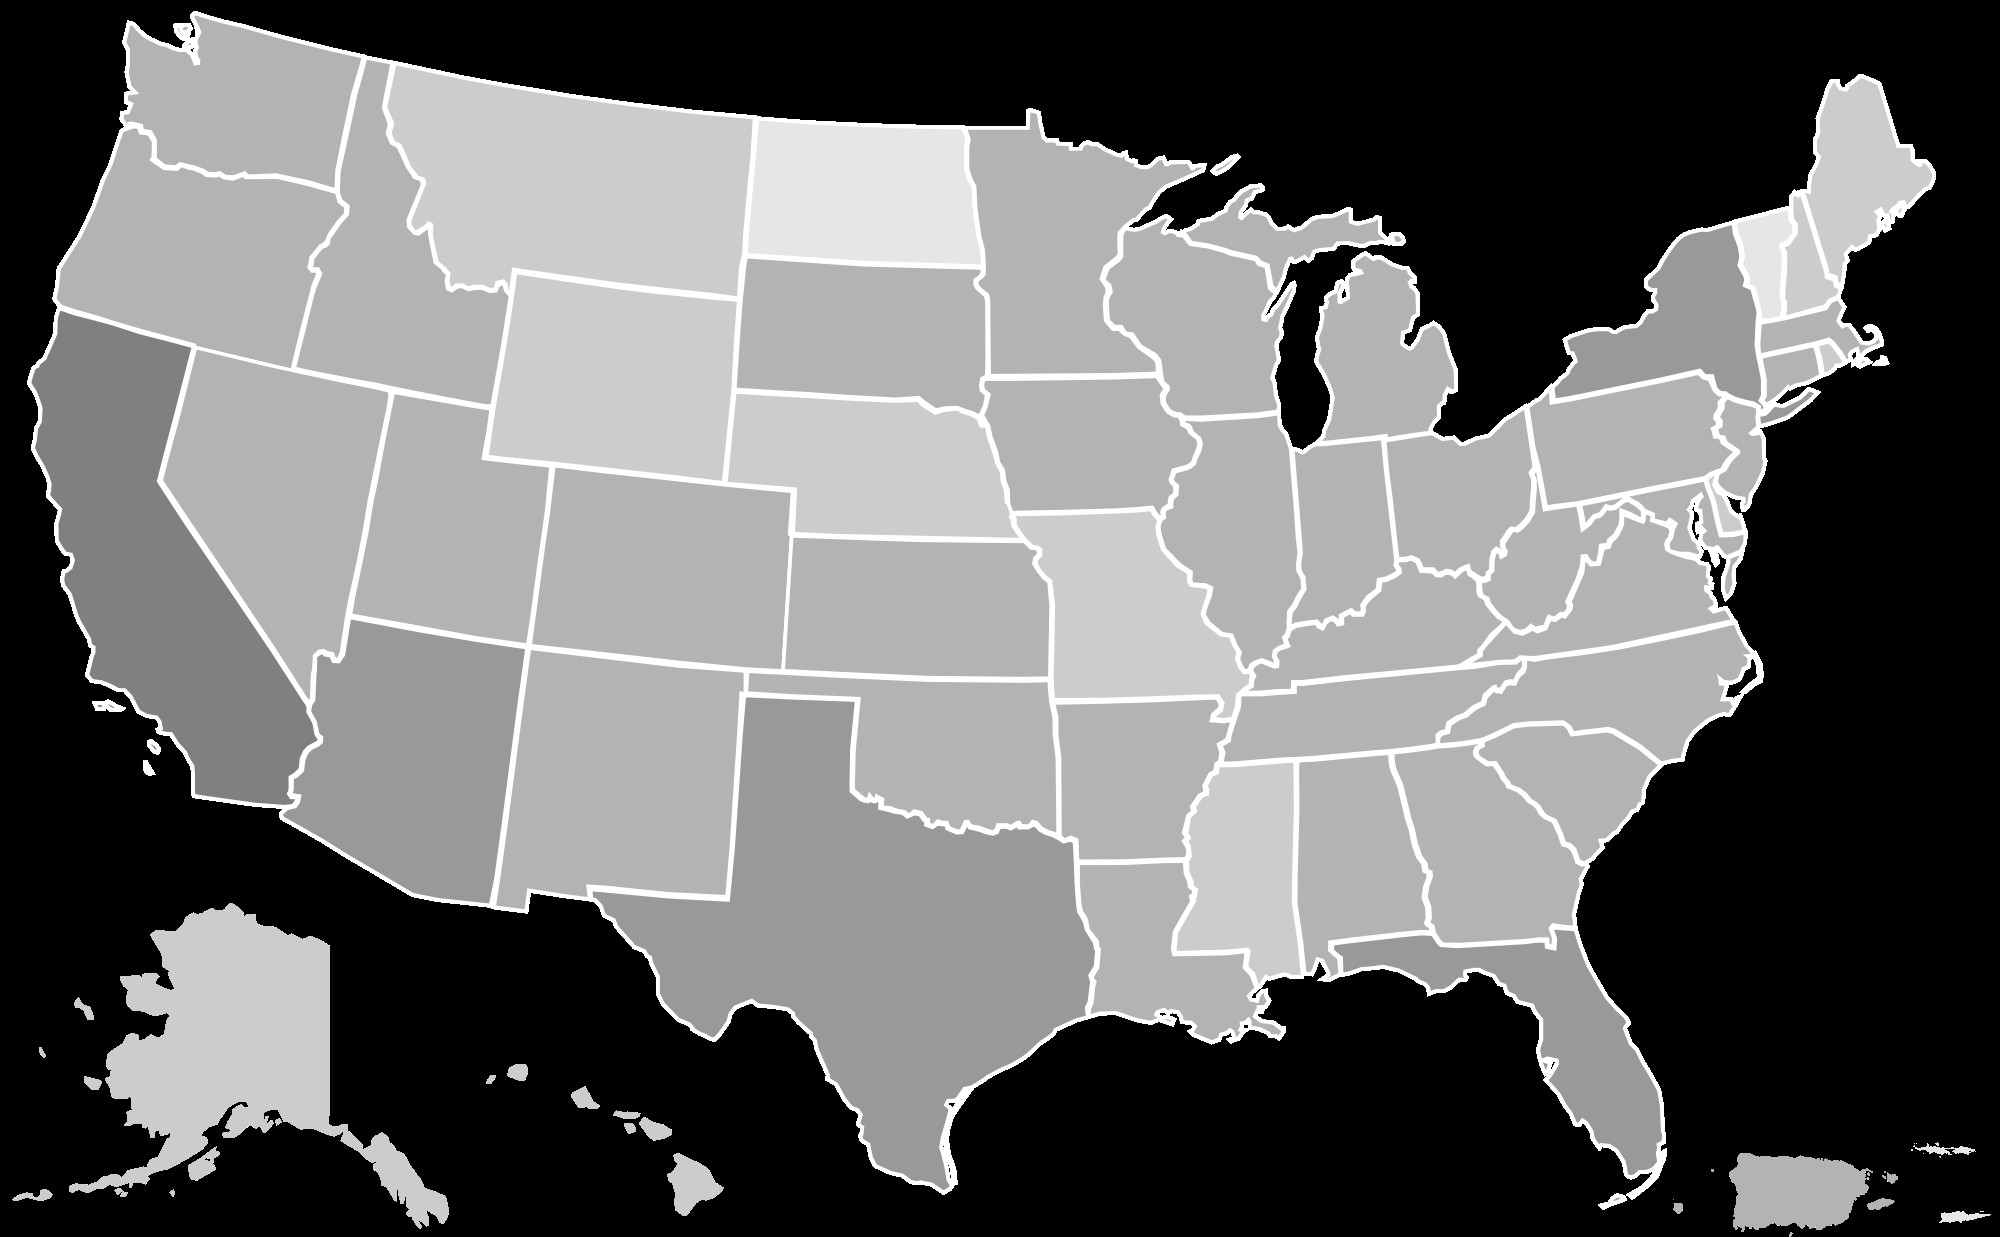 2000x1237 United States Map Vector File Fresh United States Map Vector